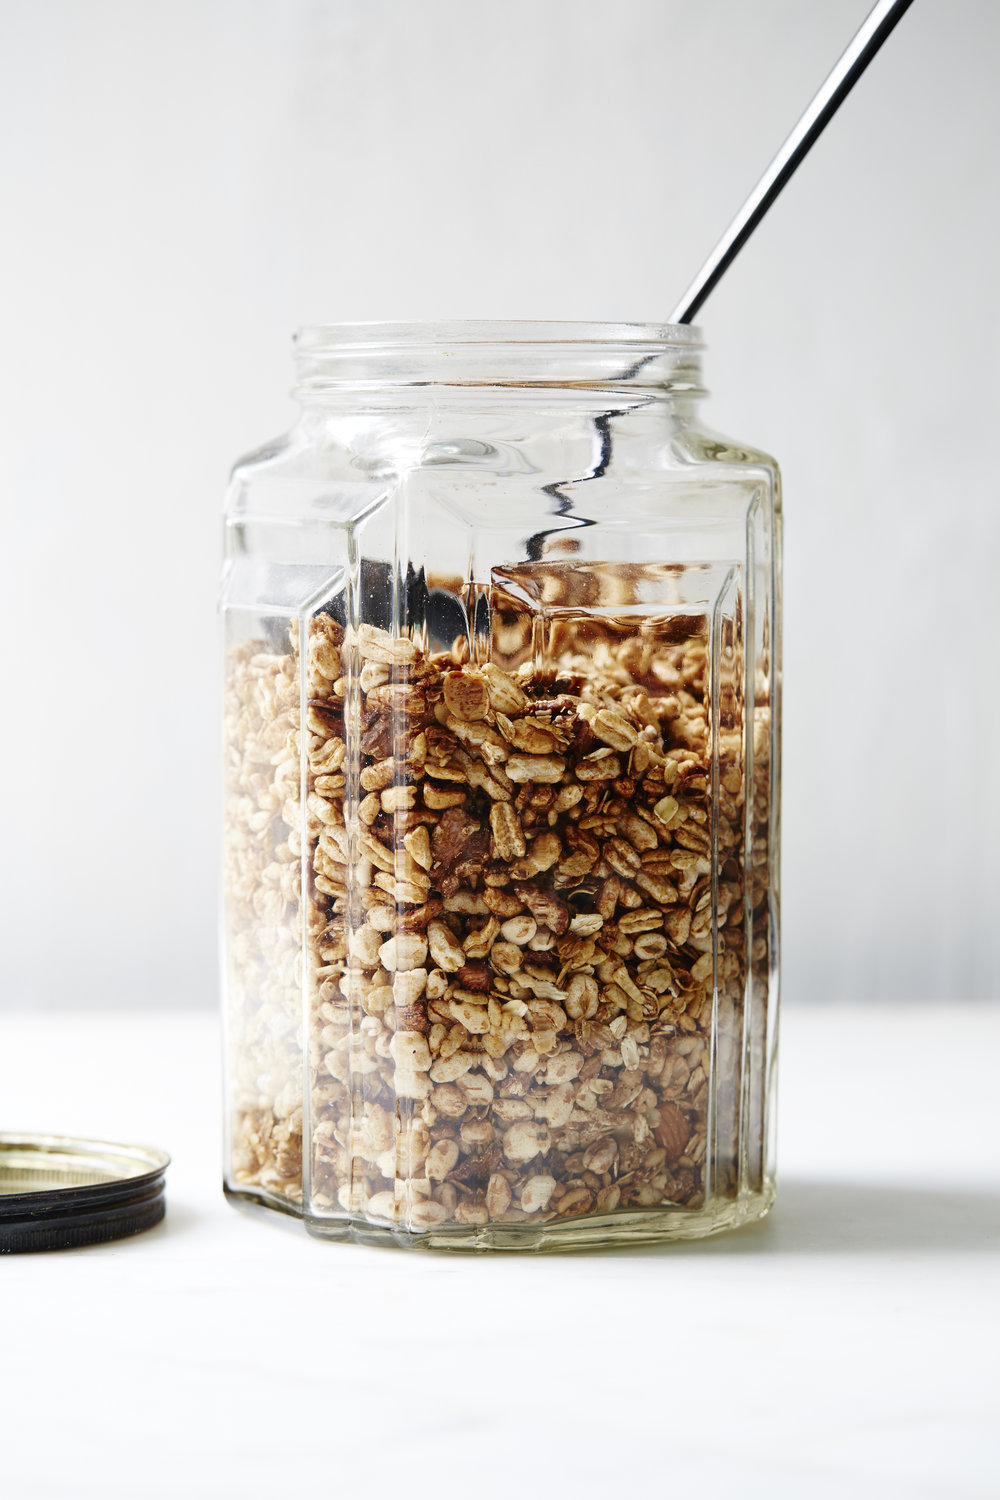 130210_Breakfast_Granola_13.jpg